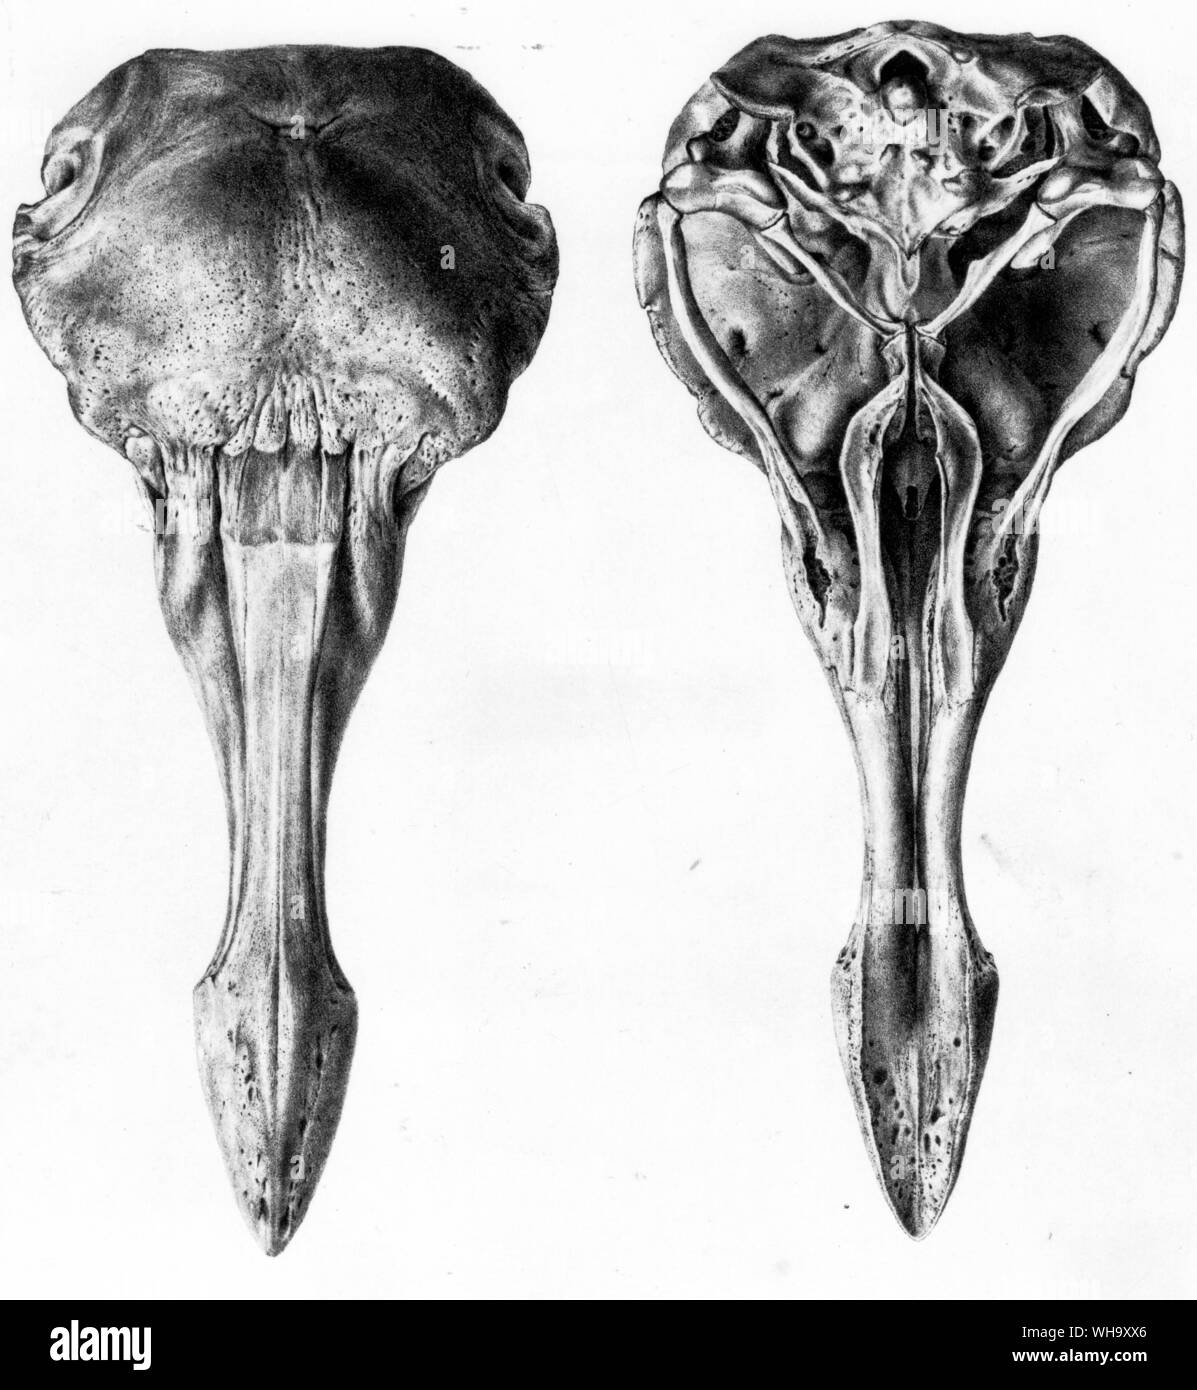 Dodo skull from above and below. Lithographs from H.E. Strickland and A.G. Melville's The Dodo and its Kindred (London, 1848) - Length of bird 100cm (3ft 3in) Stock Photo